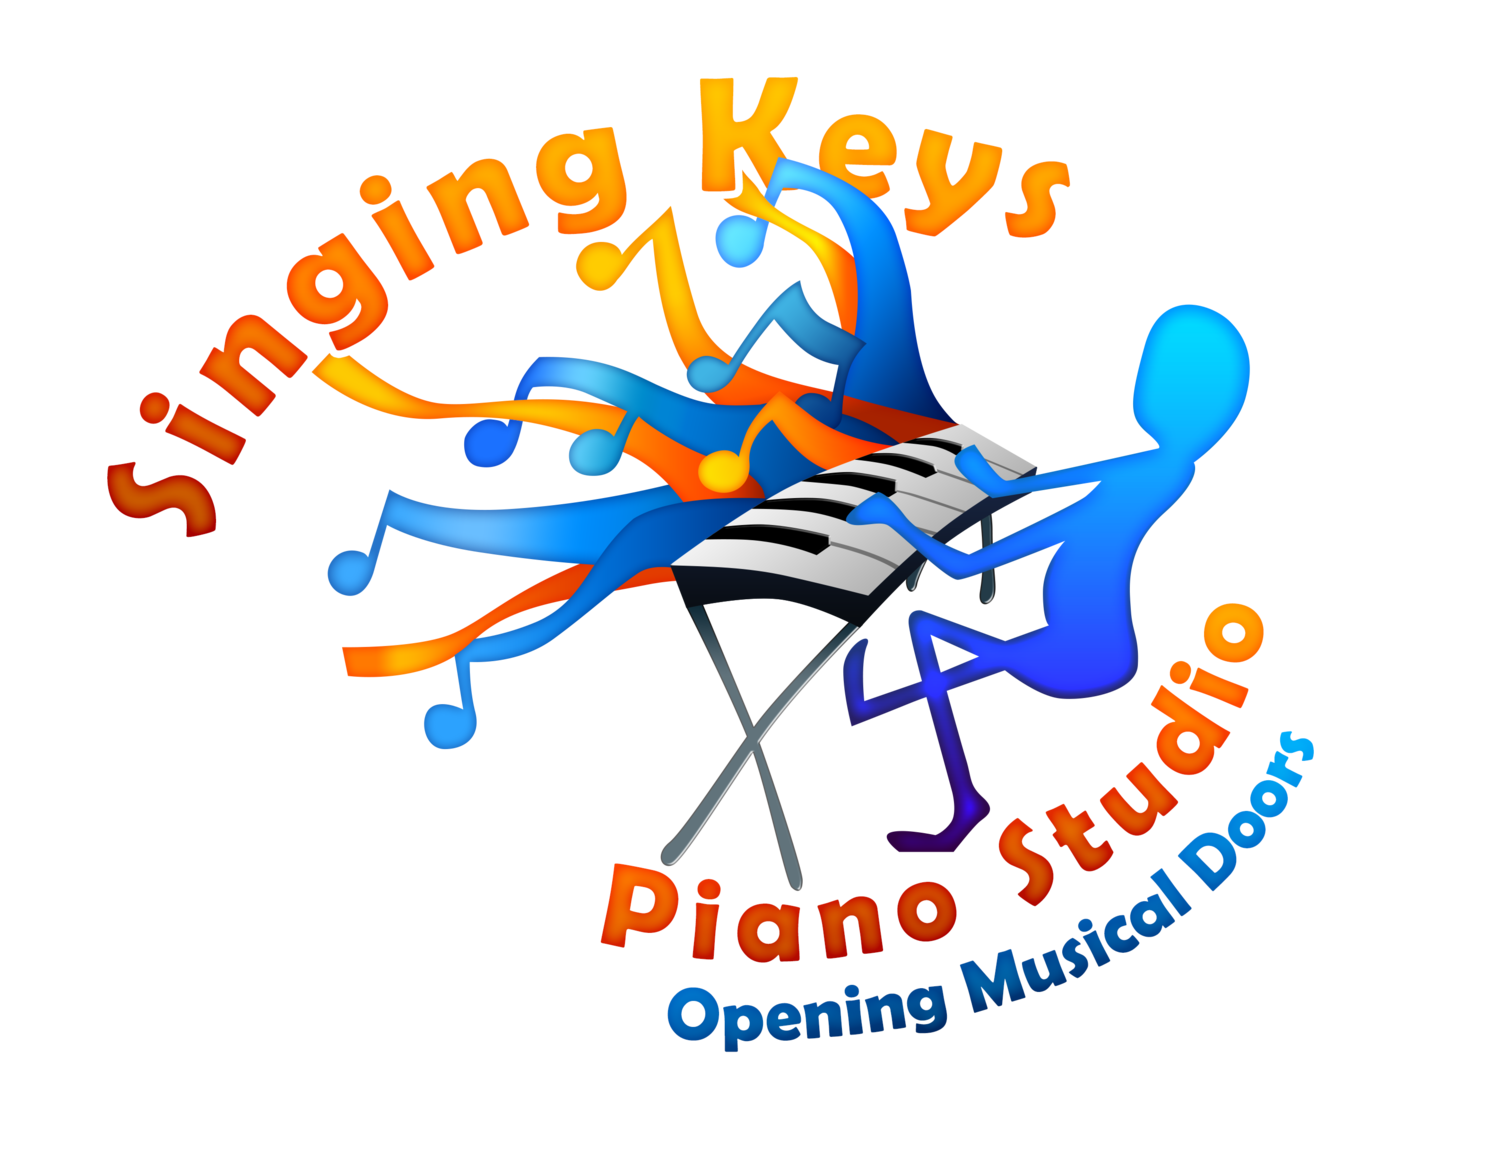 Singing Keys Piano Studio